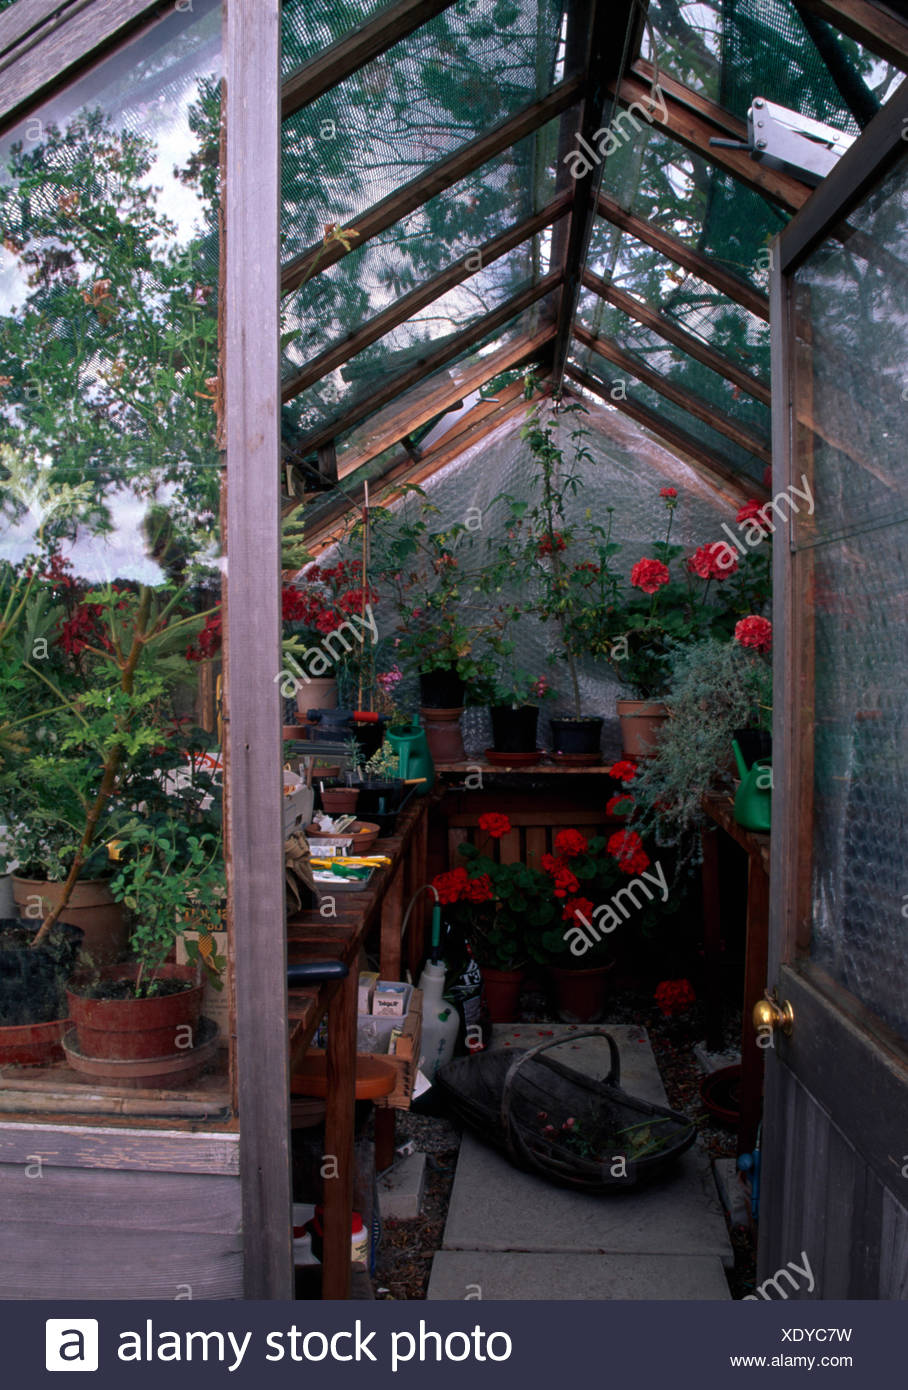 View through an open greenhouse door of red geraniums in pots on shelves - Stock Image & Greenhouse Door Open Stock Photos \u0026 Greenhouse Door Open Stock ...